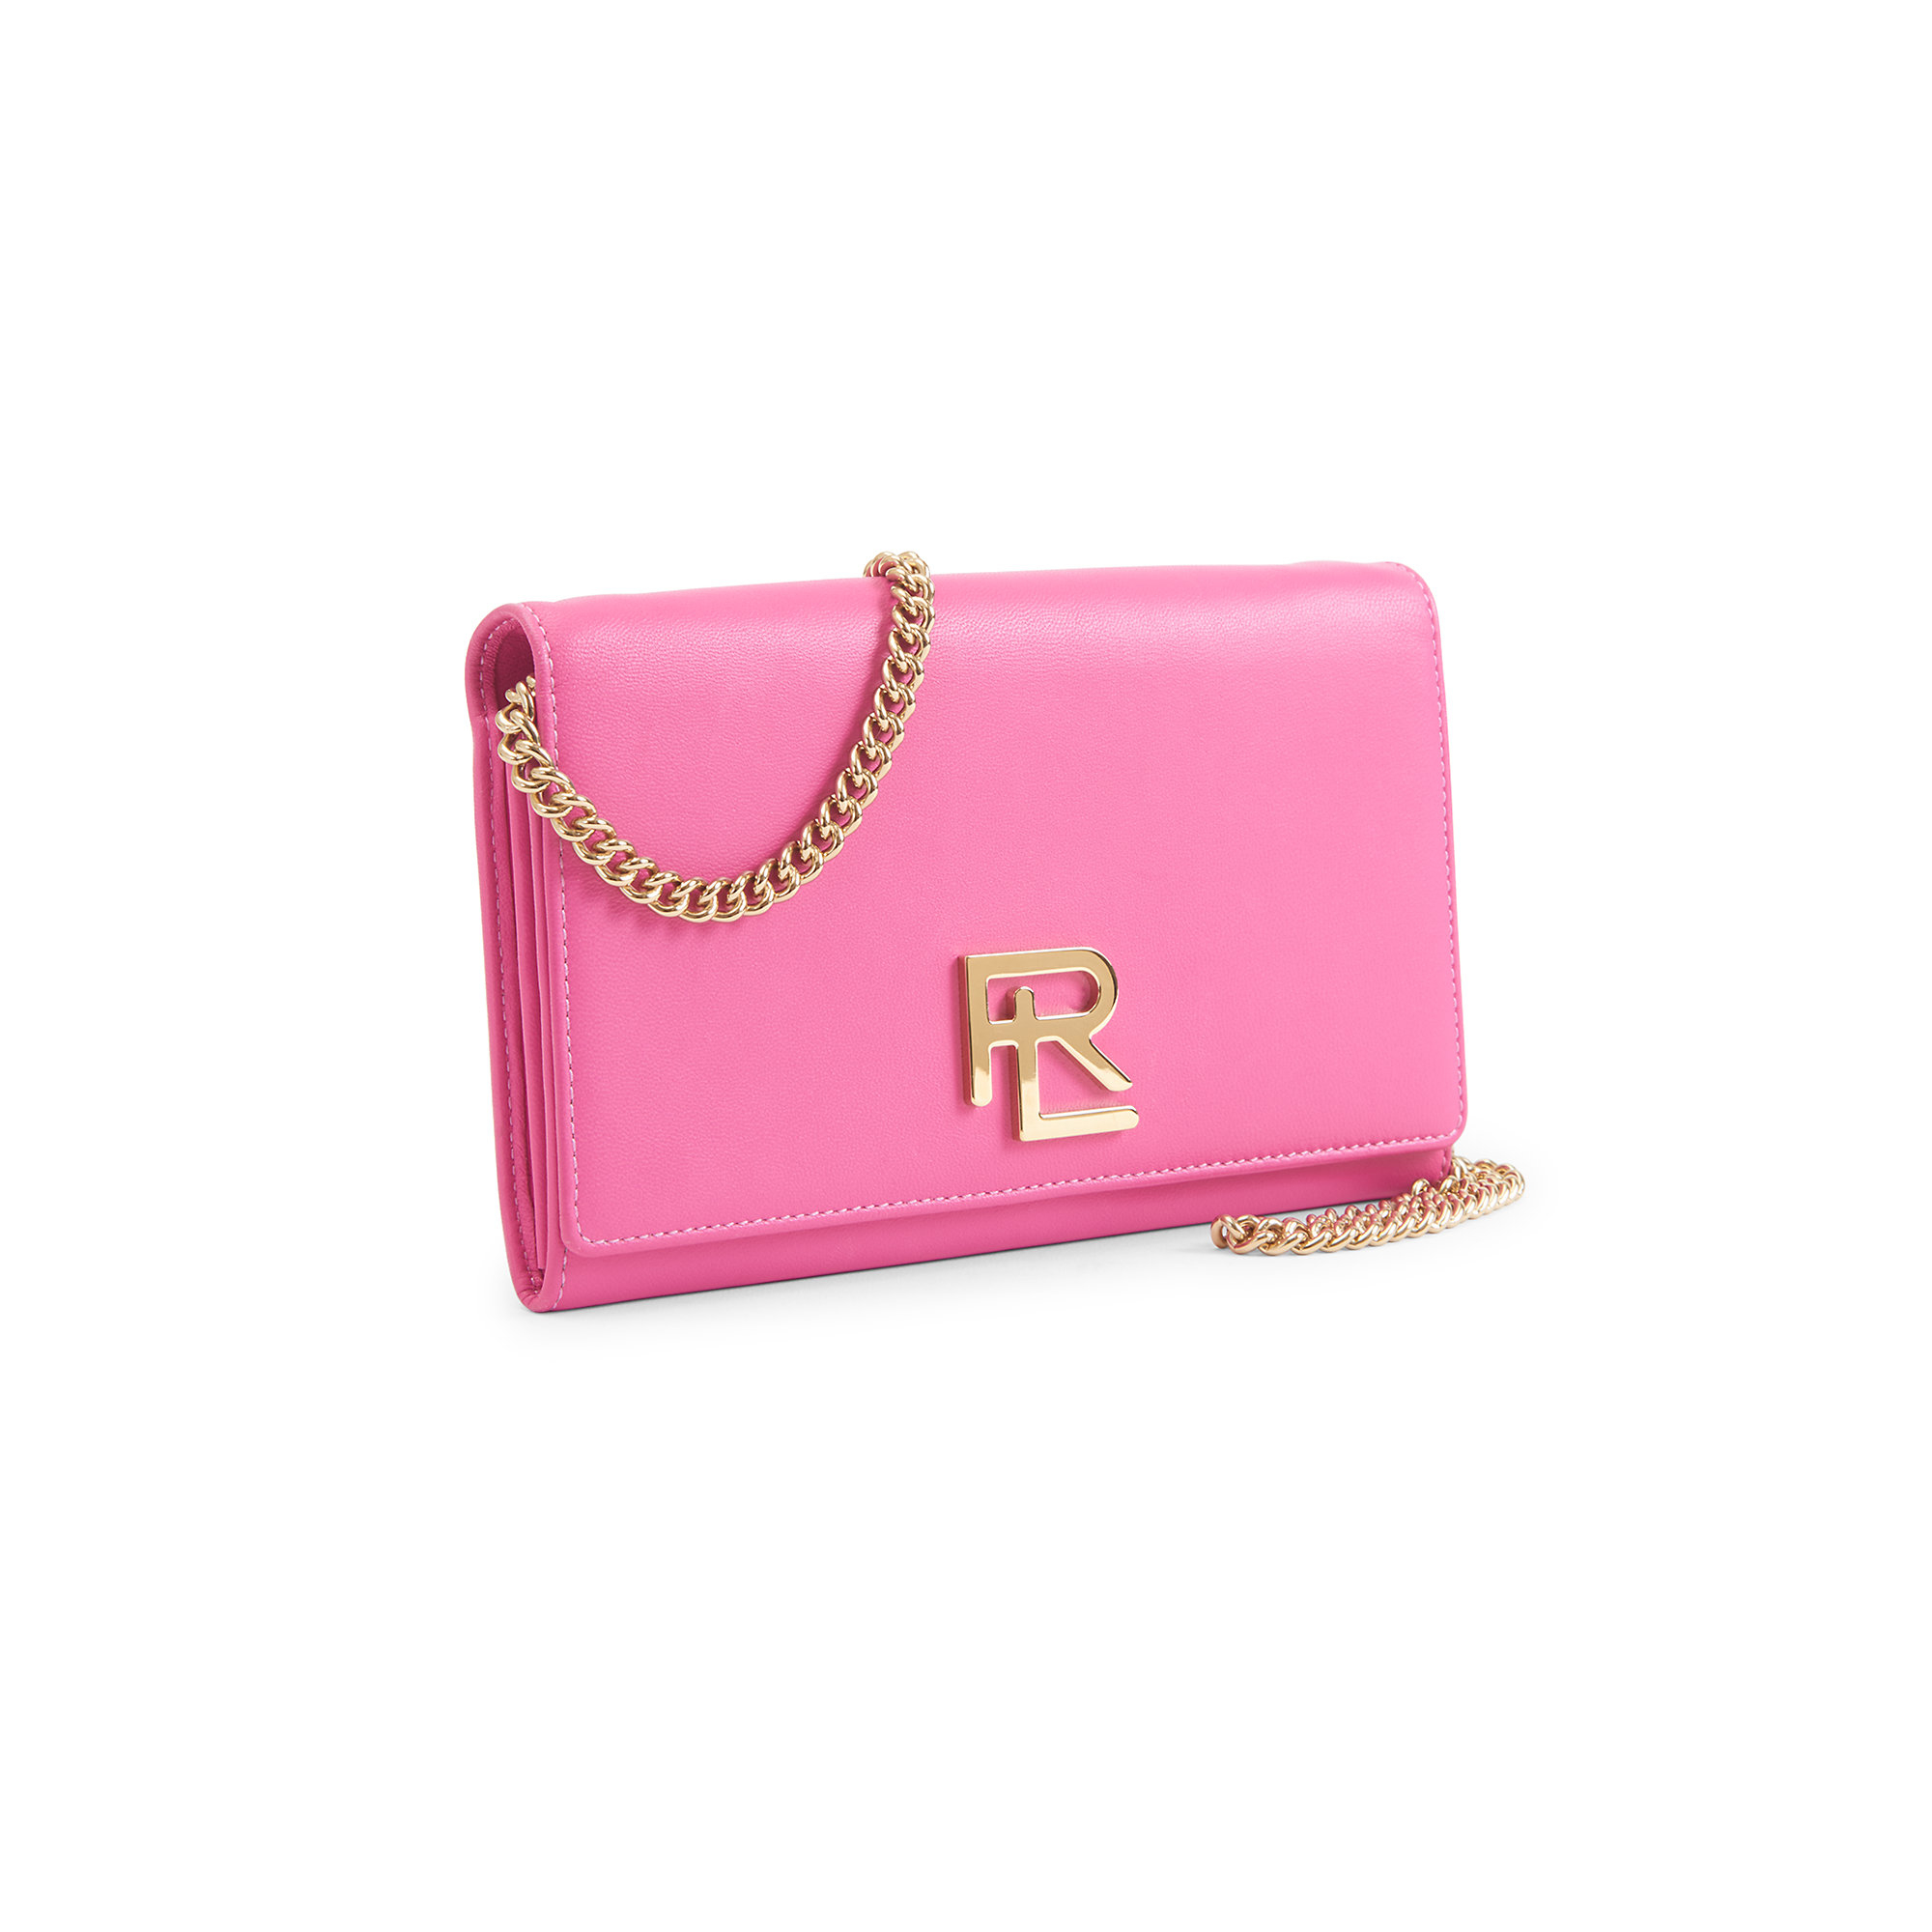 a783c9af29 Lyst - Ralph Lauren Rl Nappa Leather Chain Wallet in Pink